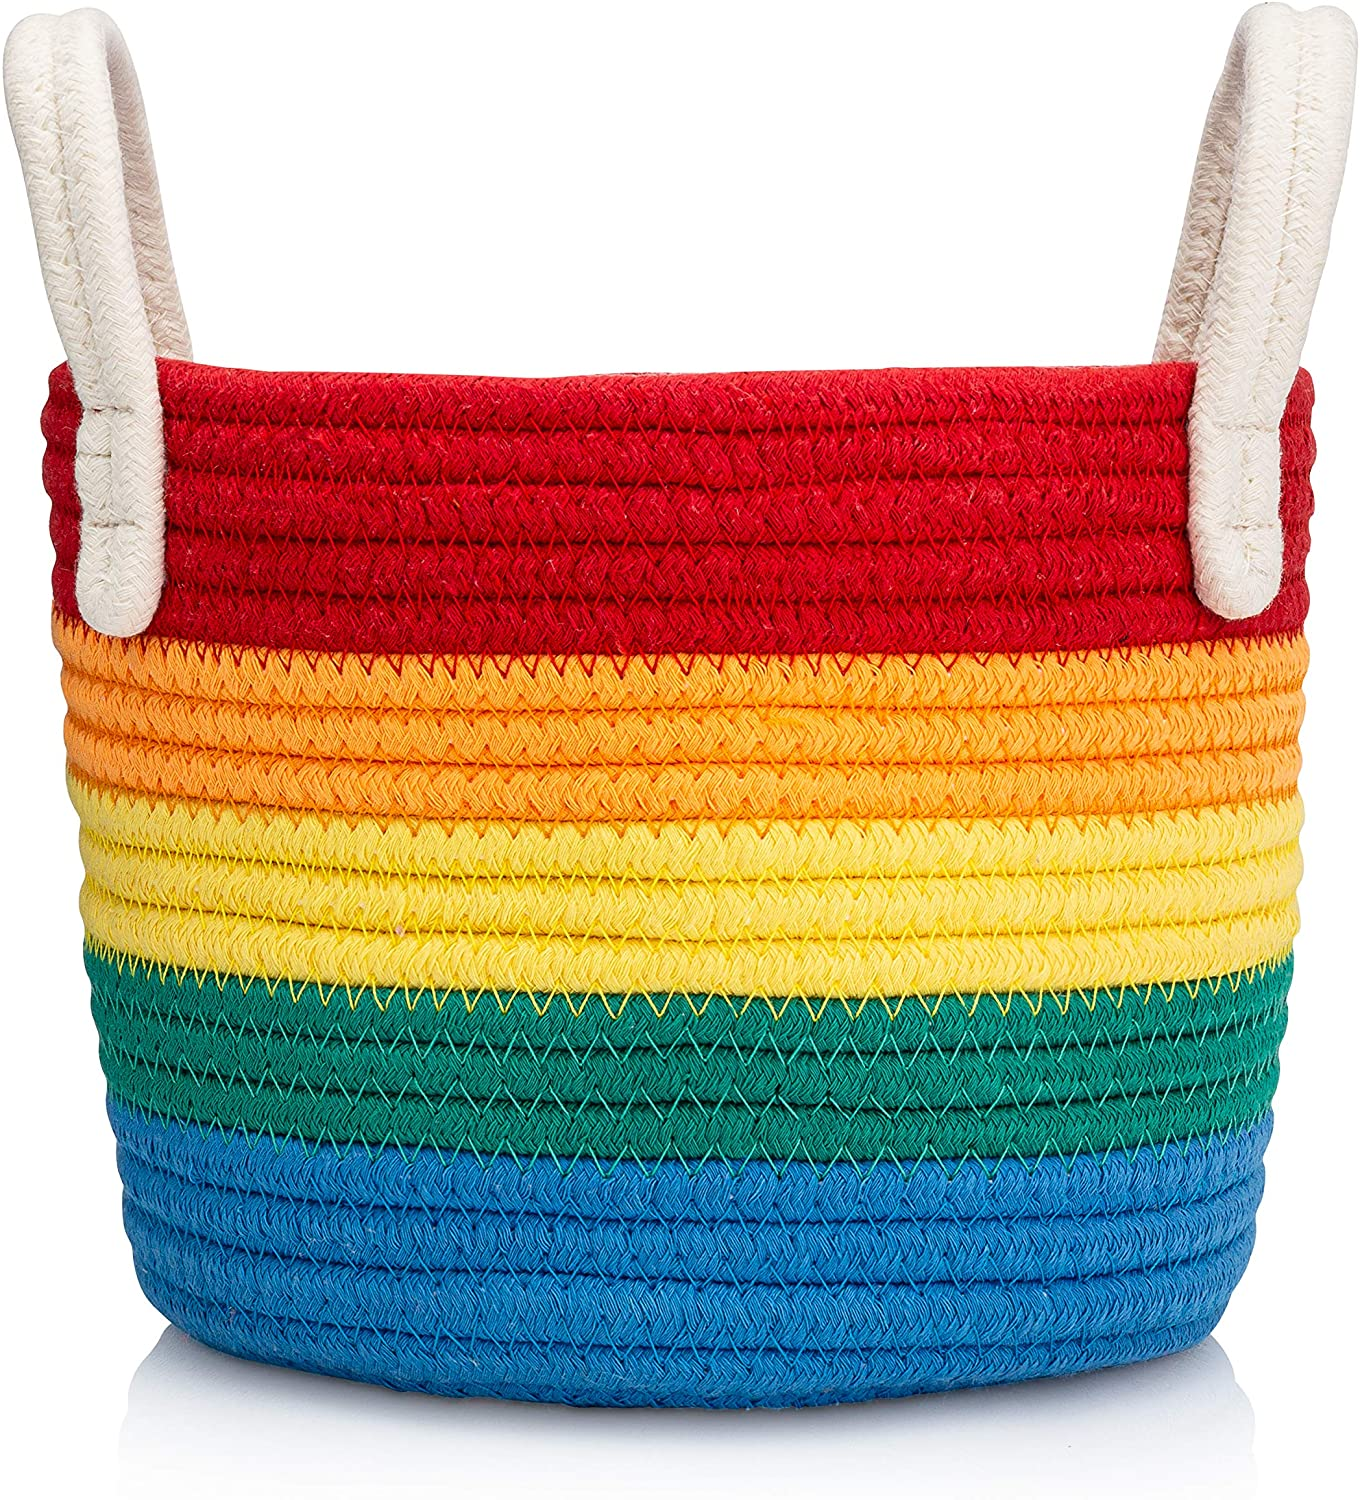 Luv Color Rainbow Decor Cotton Woven Storage Basket Perfect for Rainbow Playroom Decor Nursery Kids Bedroom Bathroom or Classroom - Great for Organizing Toys Art Supplies Clothes